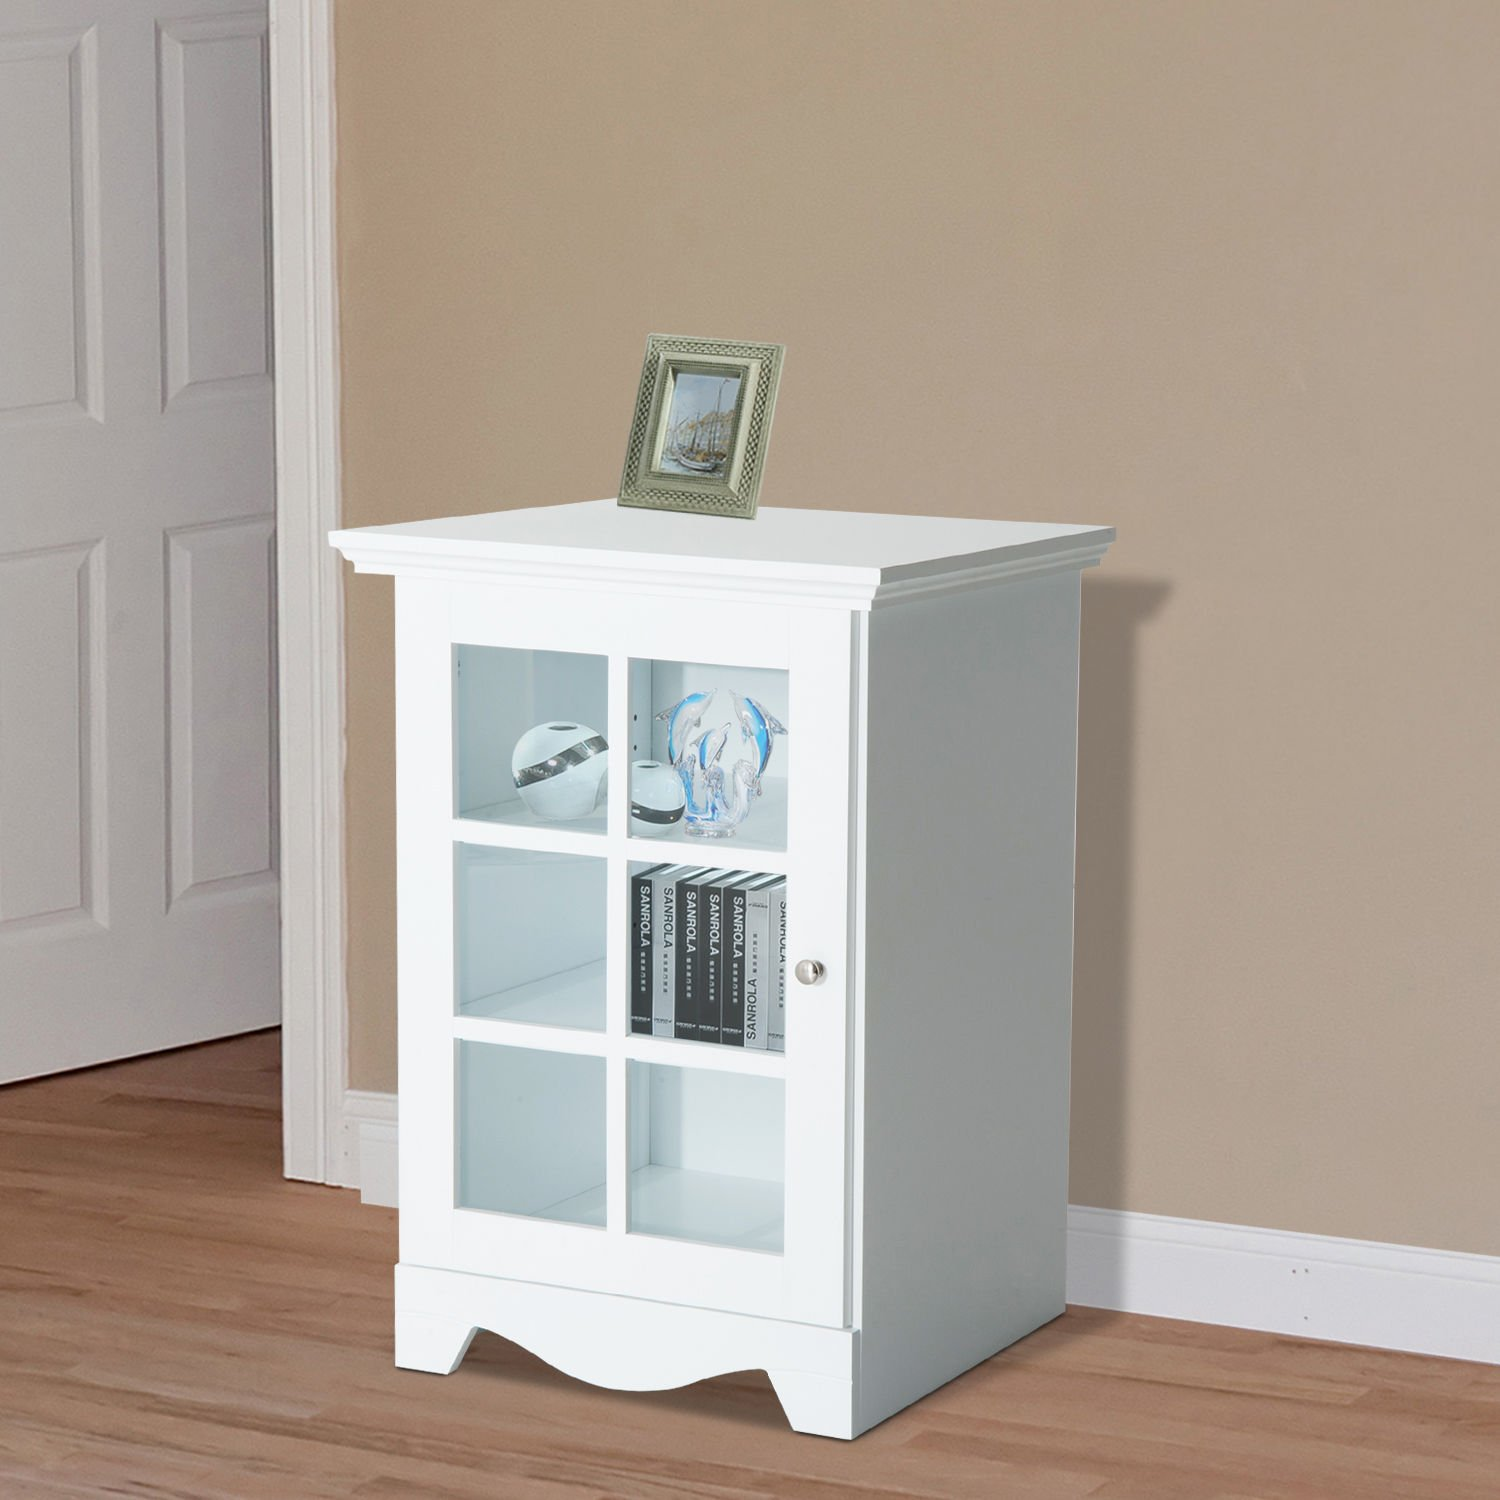 New White Wood Cabinet Storage Hutch Kitchen Bathroom Bedroom Single Glassed Door Shelves by totoshop (Image #3)